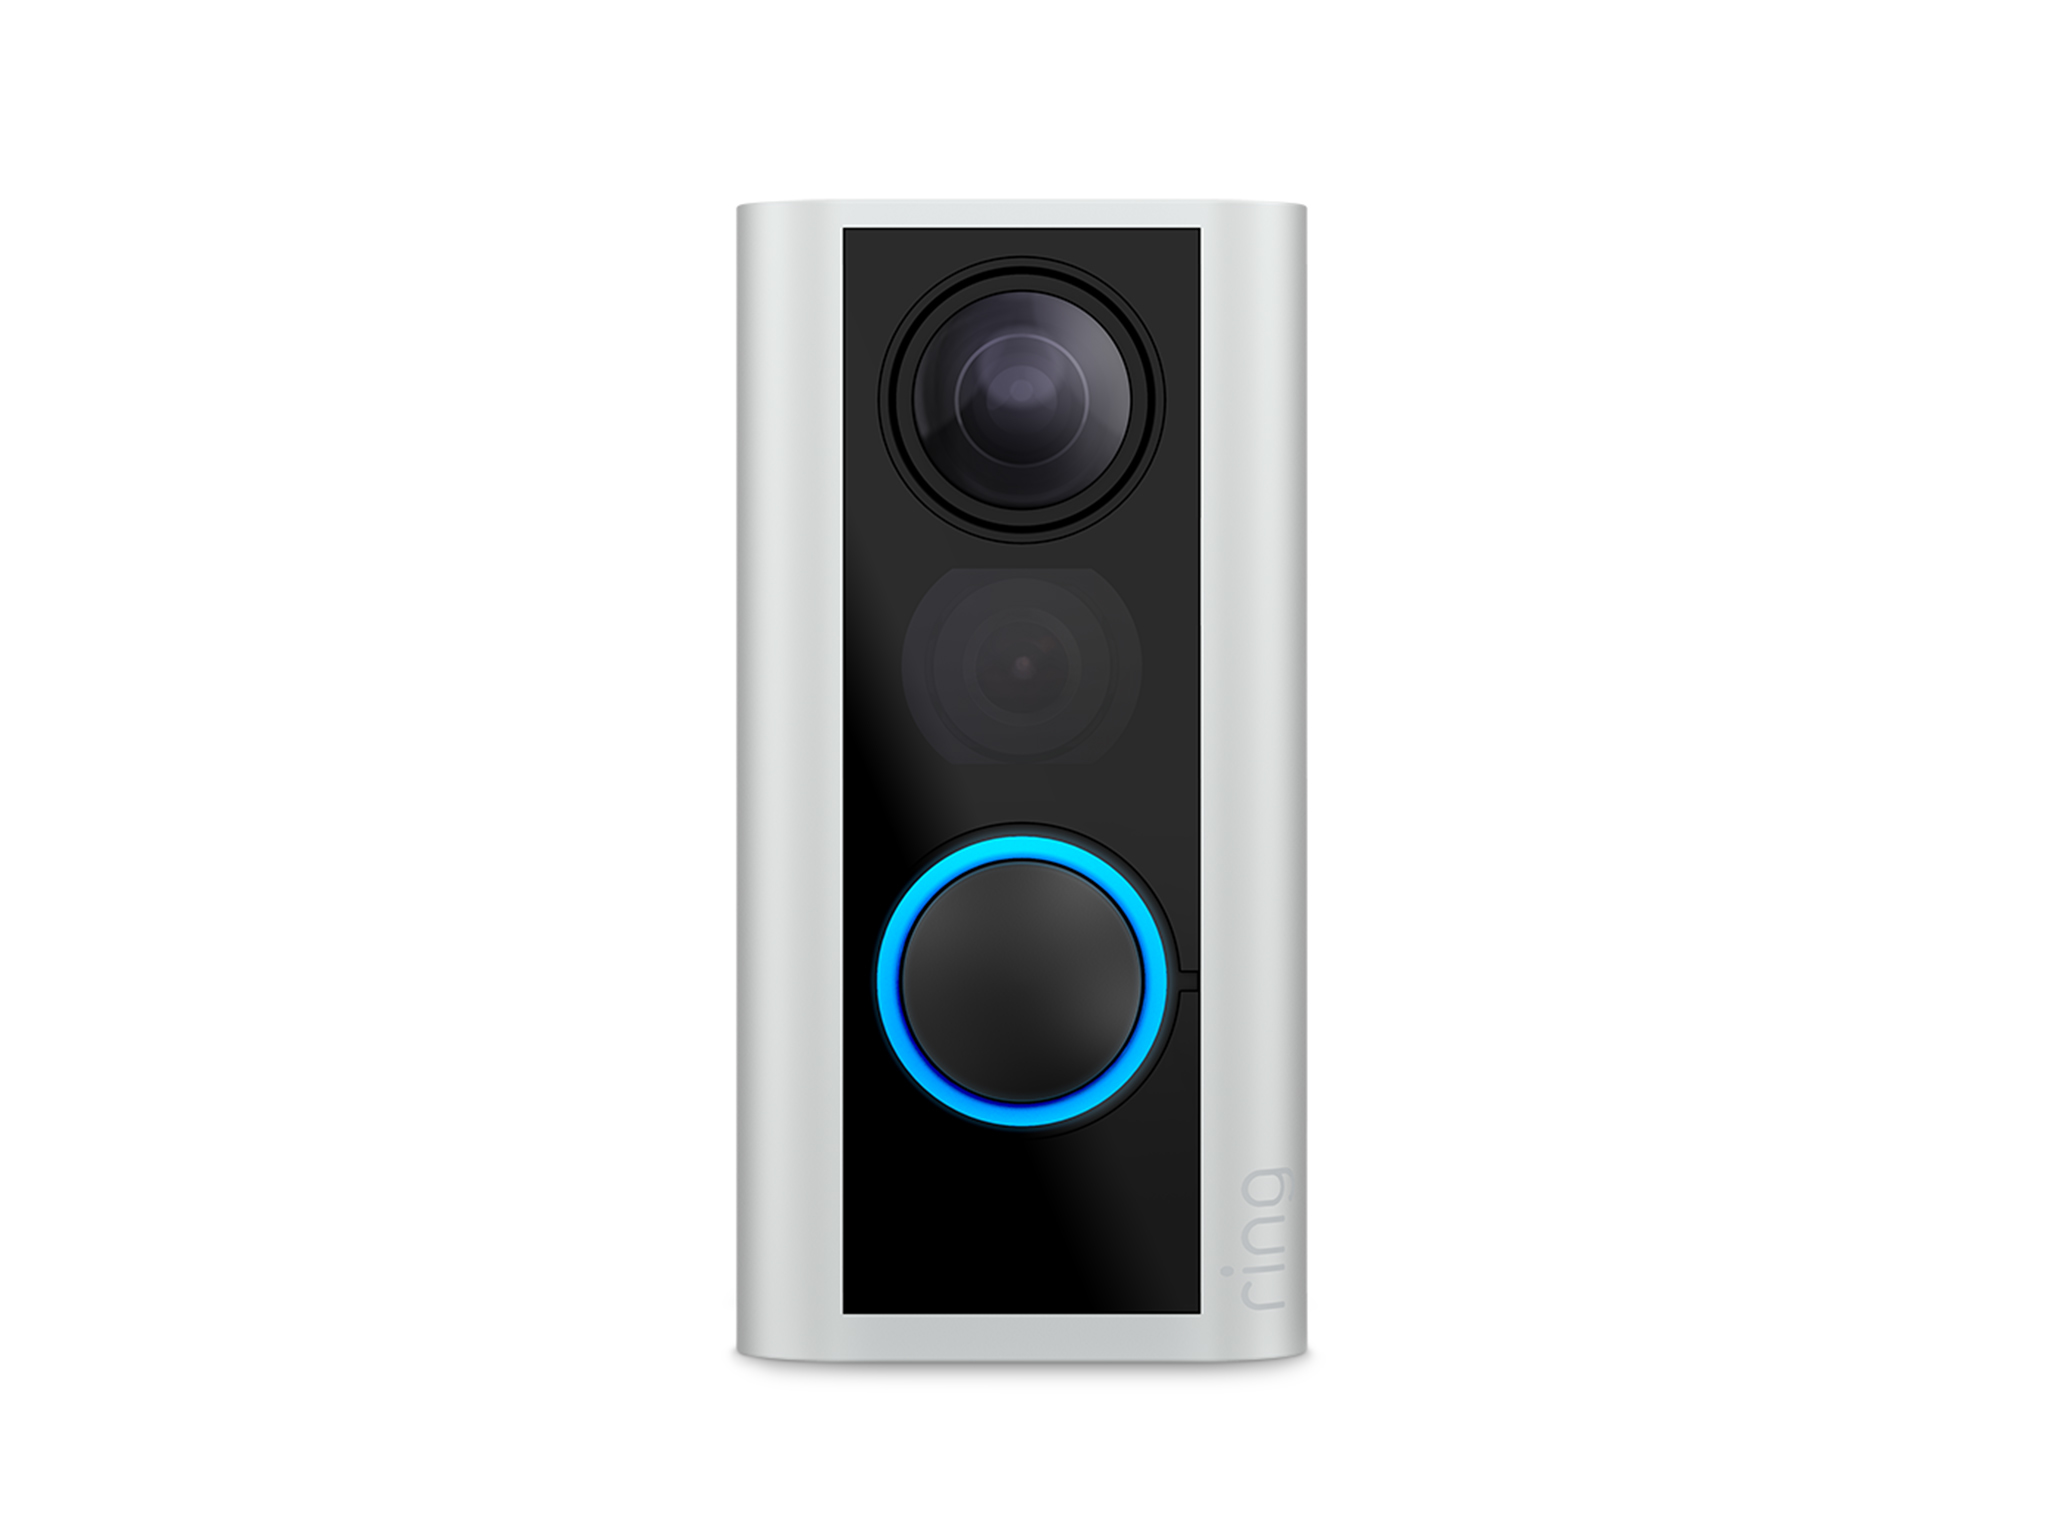 Ring Smart Door View Cam with Built-in Wi-Fi & camera